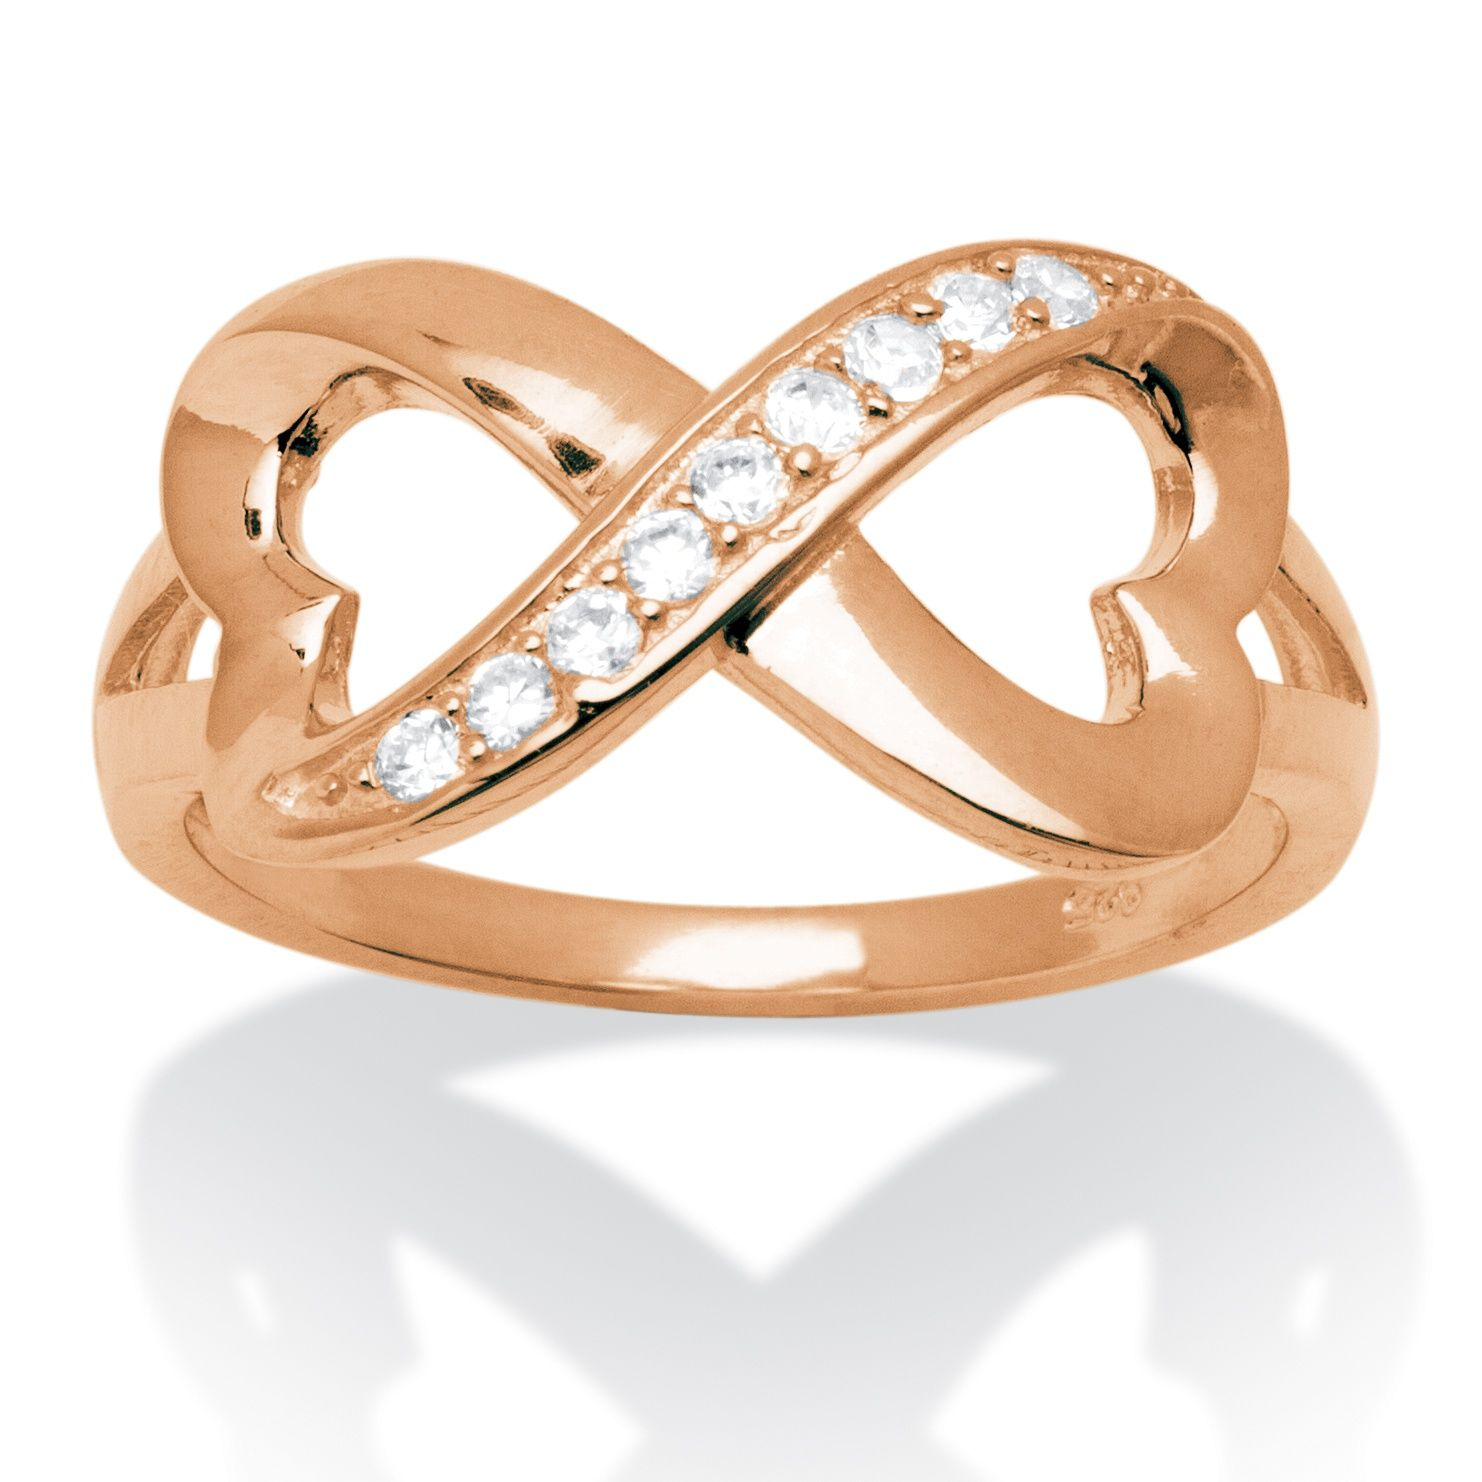 Cubic Zirconia Accent Infinity Heart Ring in Rose Gold Over Sterling